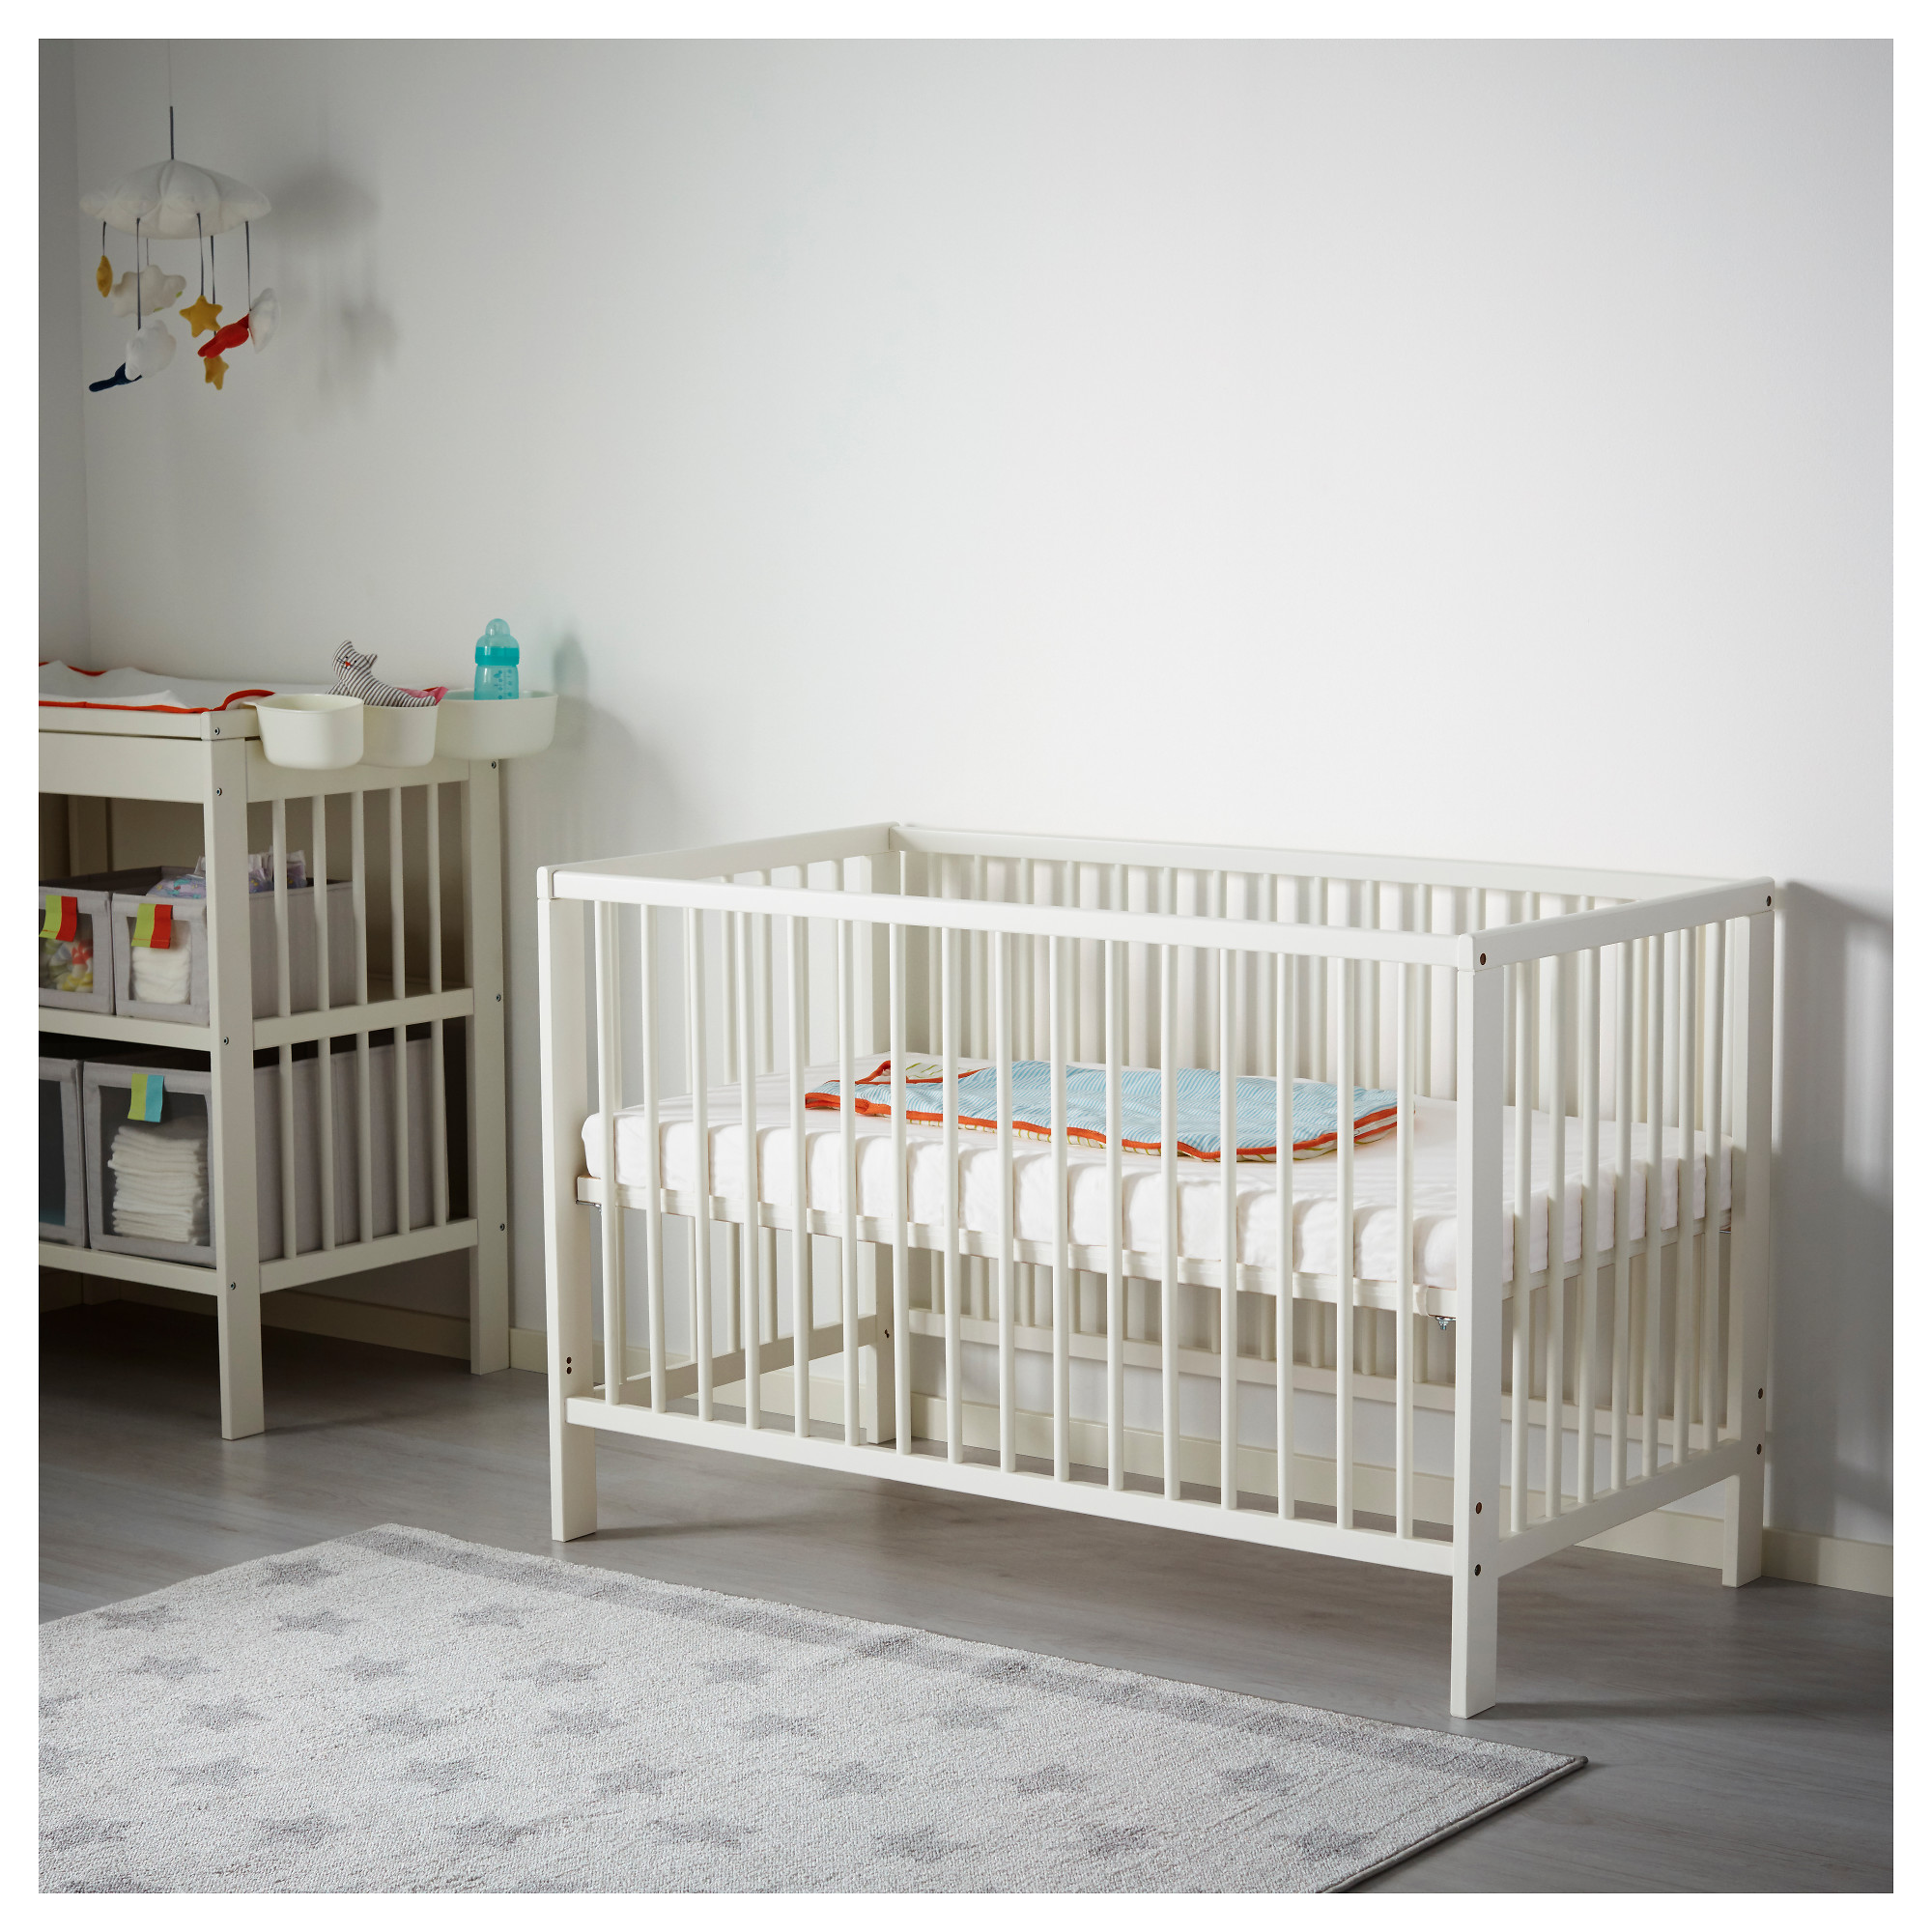 baby stokke bed from also check full for sleepi w designed neutral crib pin toddler modern into out size scandinavian turns a to looking grows mini